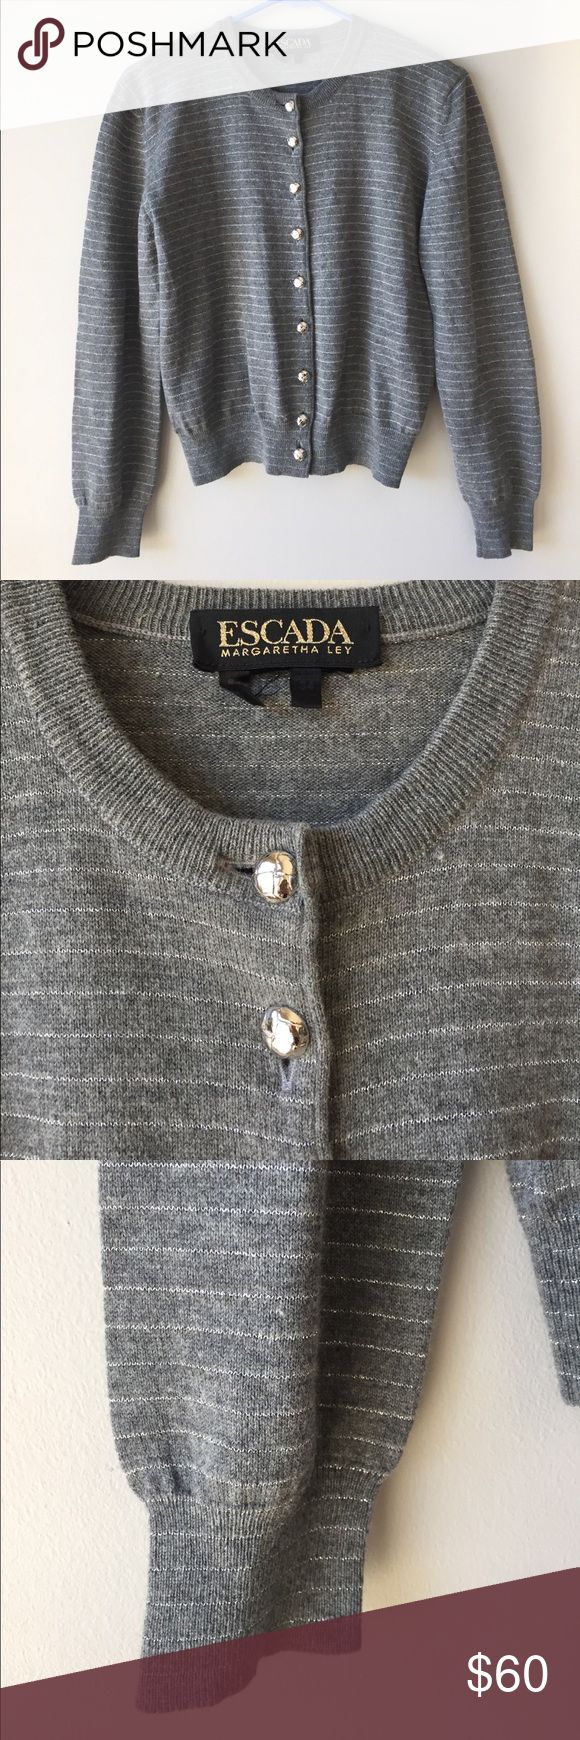 Escada Margaretha Ley Cardigan Sweater Escada Margaretha Ley gray and silver striped Cardigan Sweater. Size 34. Great condition. Measurements:  Chest (laying flat, across the front, pit to pit): 19in Sleeve length: 22in Length: 20in Escada Sweaters Cardigans